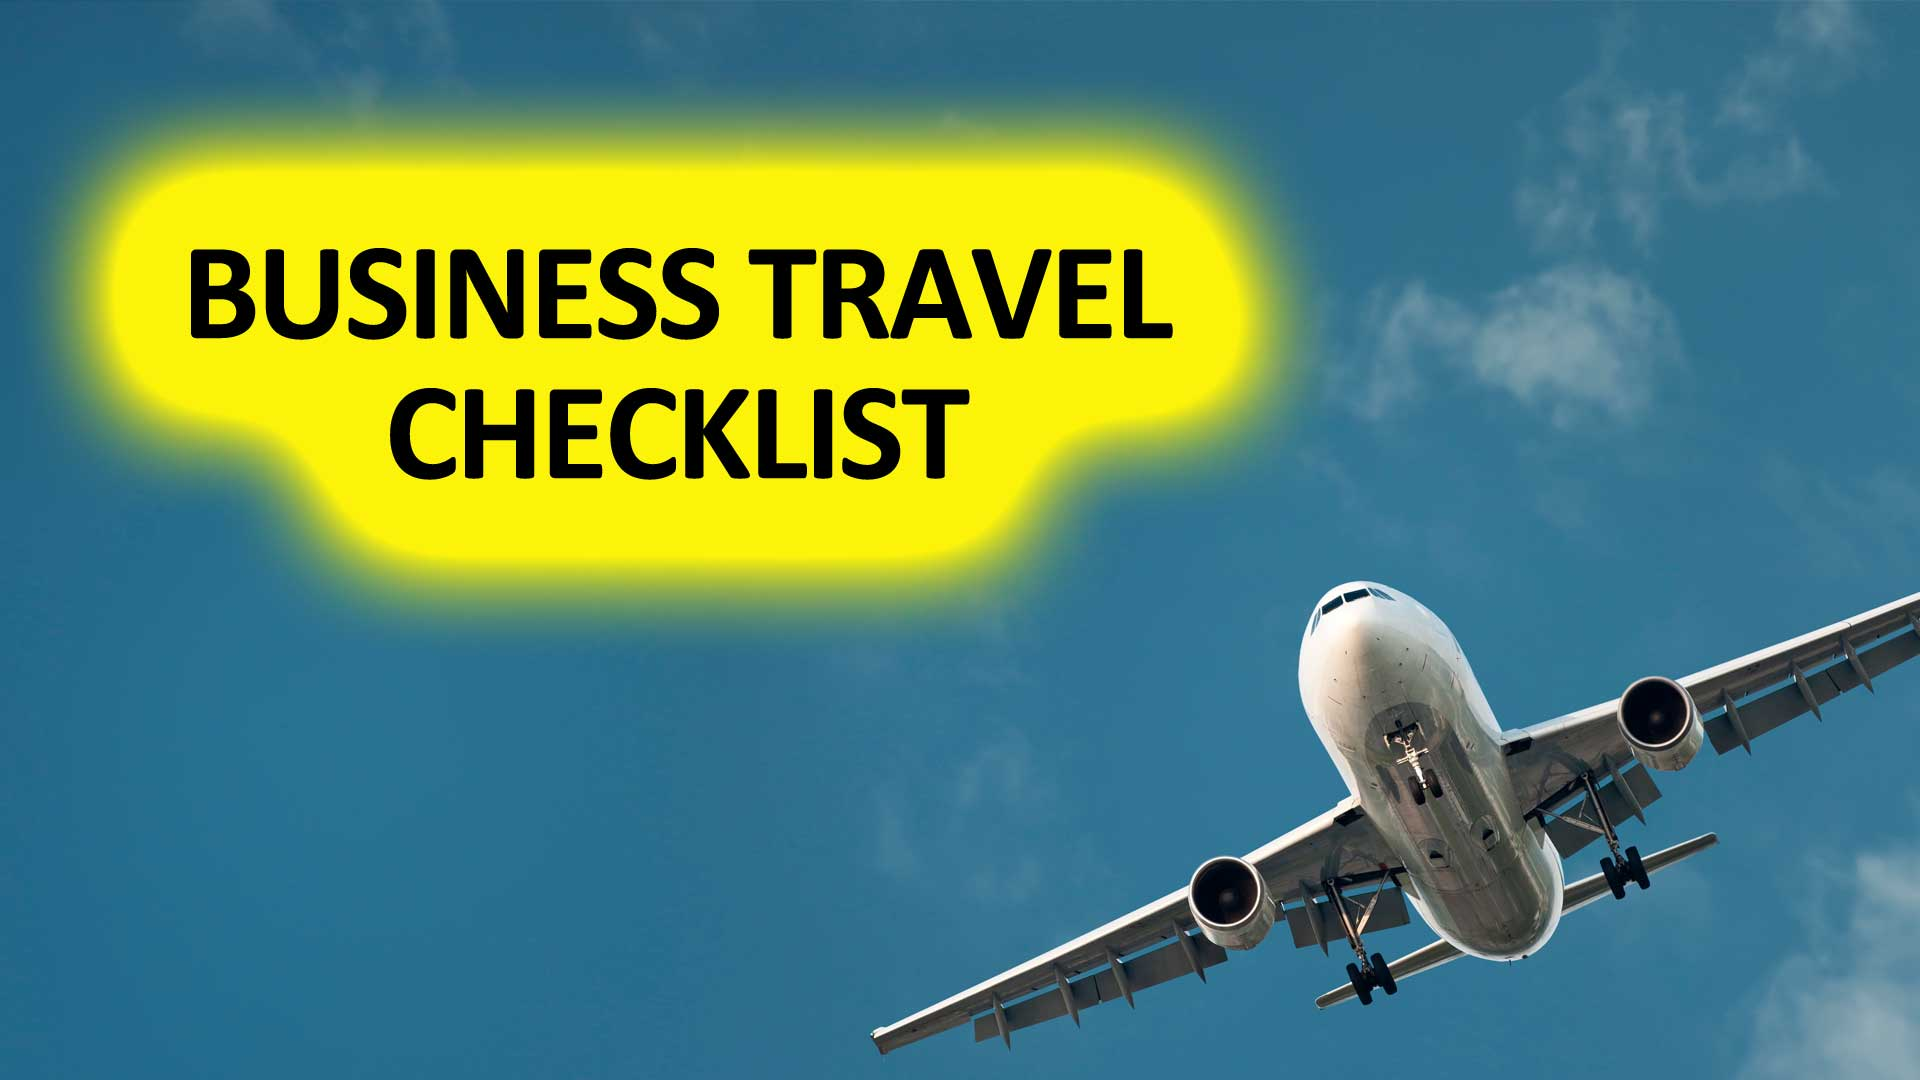 Checklist for business trave